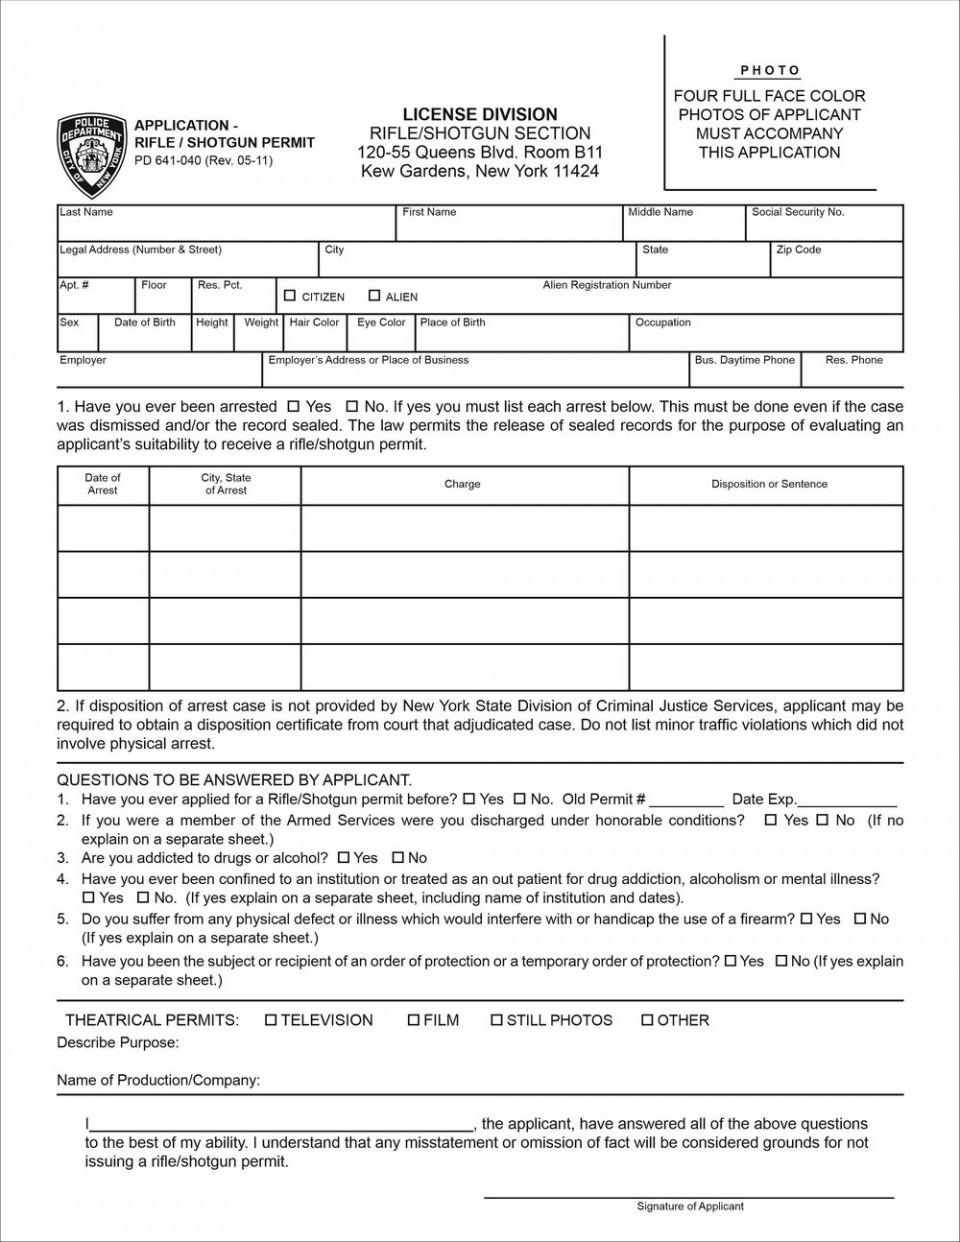 Print Indian Visa Application Form Uk